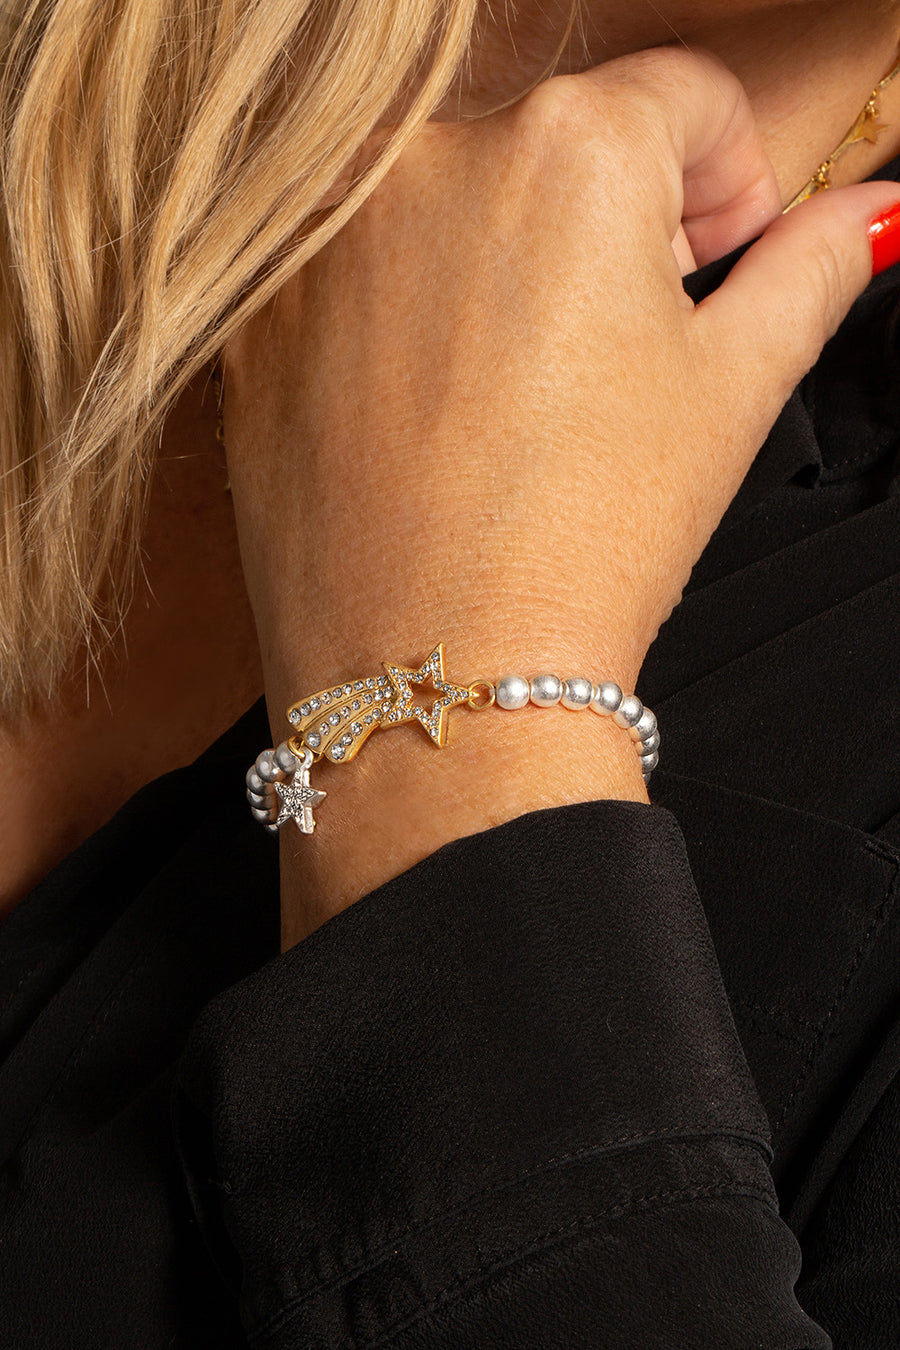 Kate Thornton 'Shooting Star' Gold and Silver Bracelet